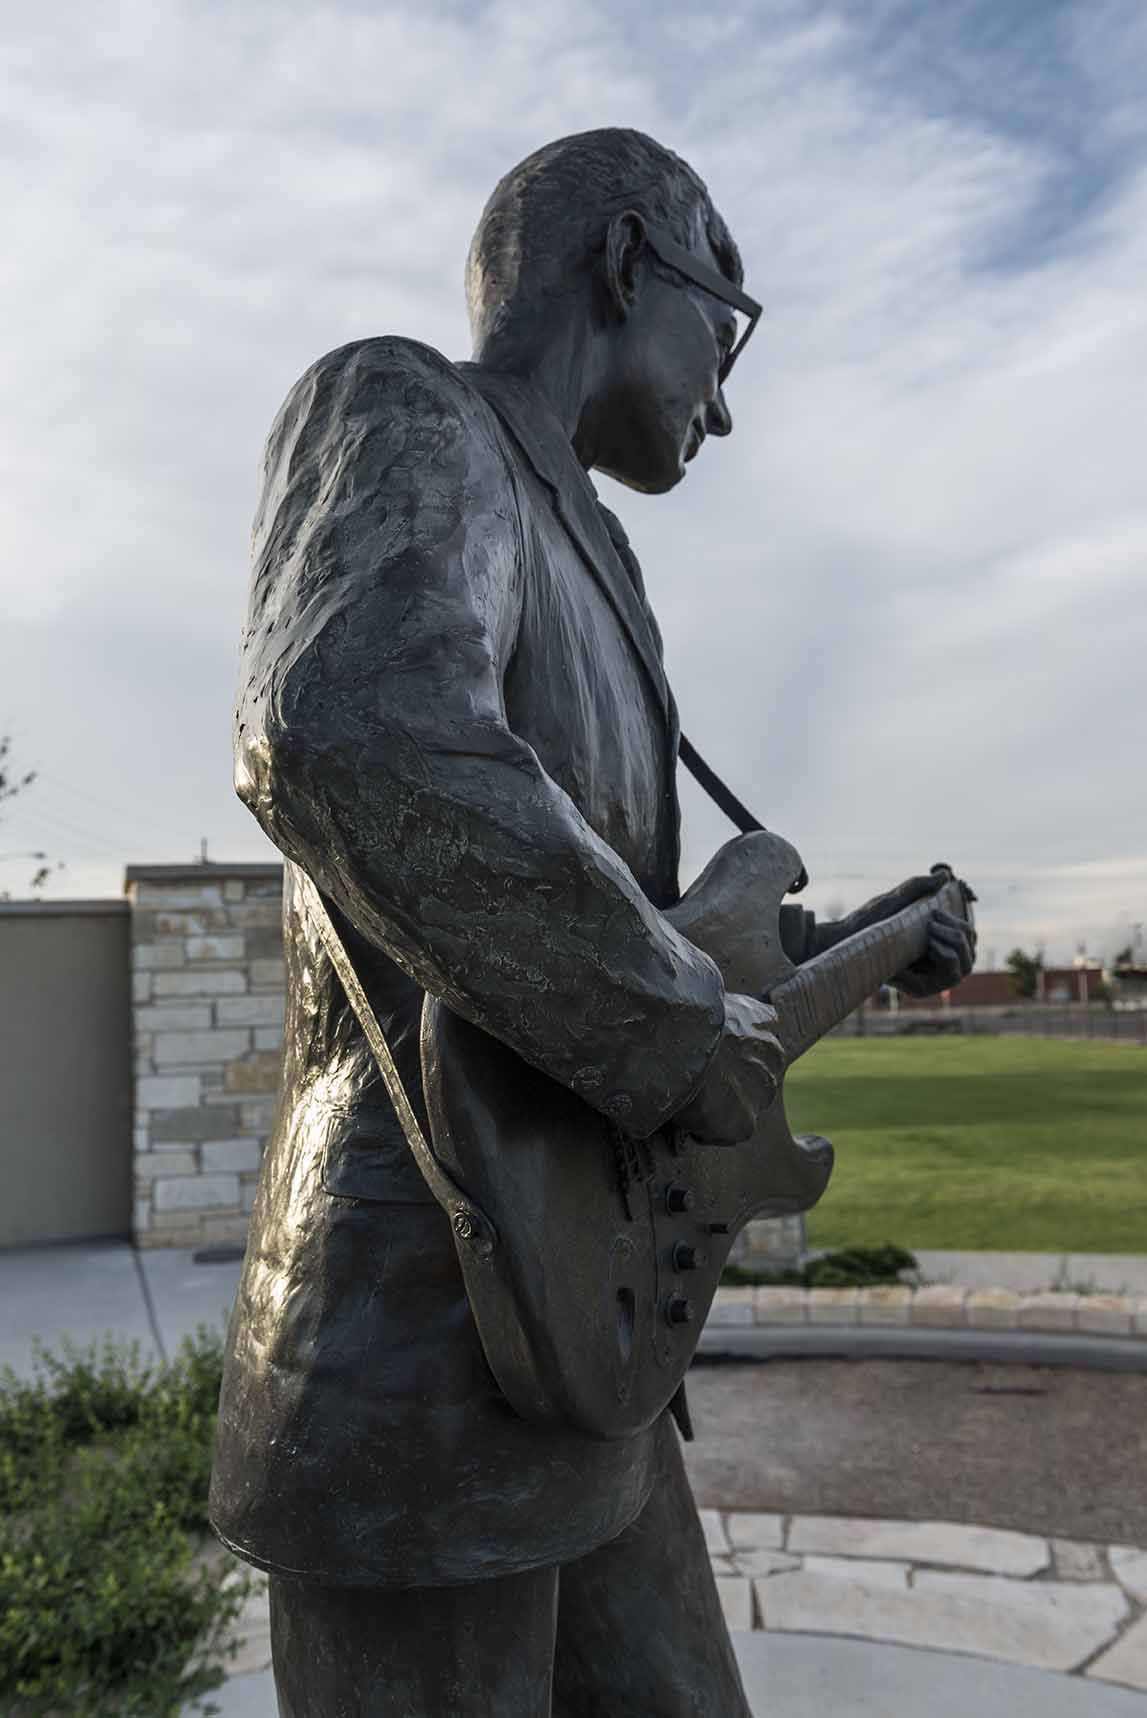 A statue of rock icon Buddy Holly with guitar.